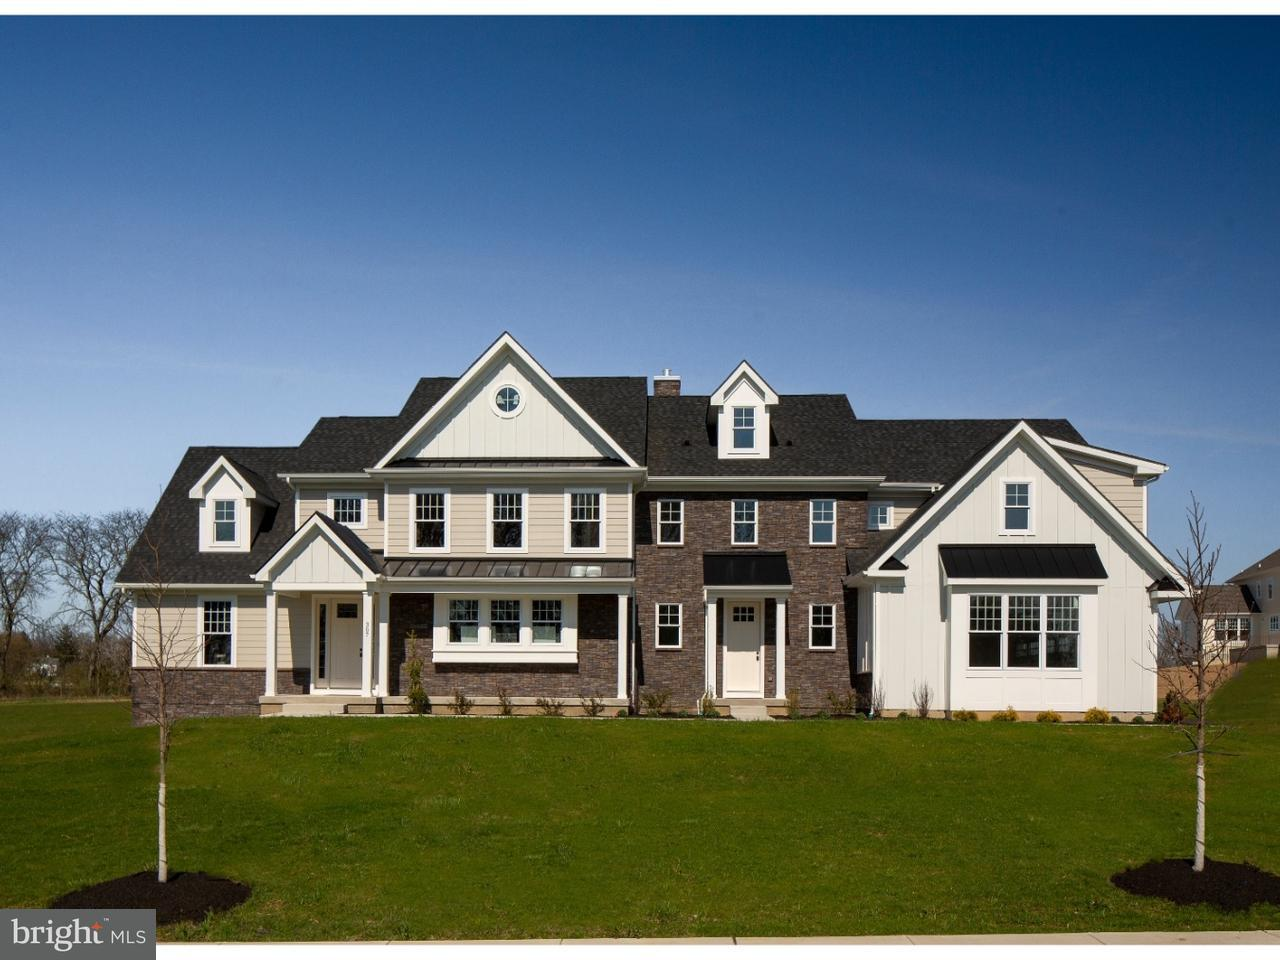 Single Family Home for Sale at 87 WALTER Road Chalfont, Pennsylvania 18914 United States